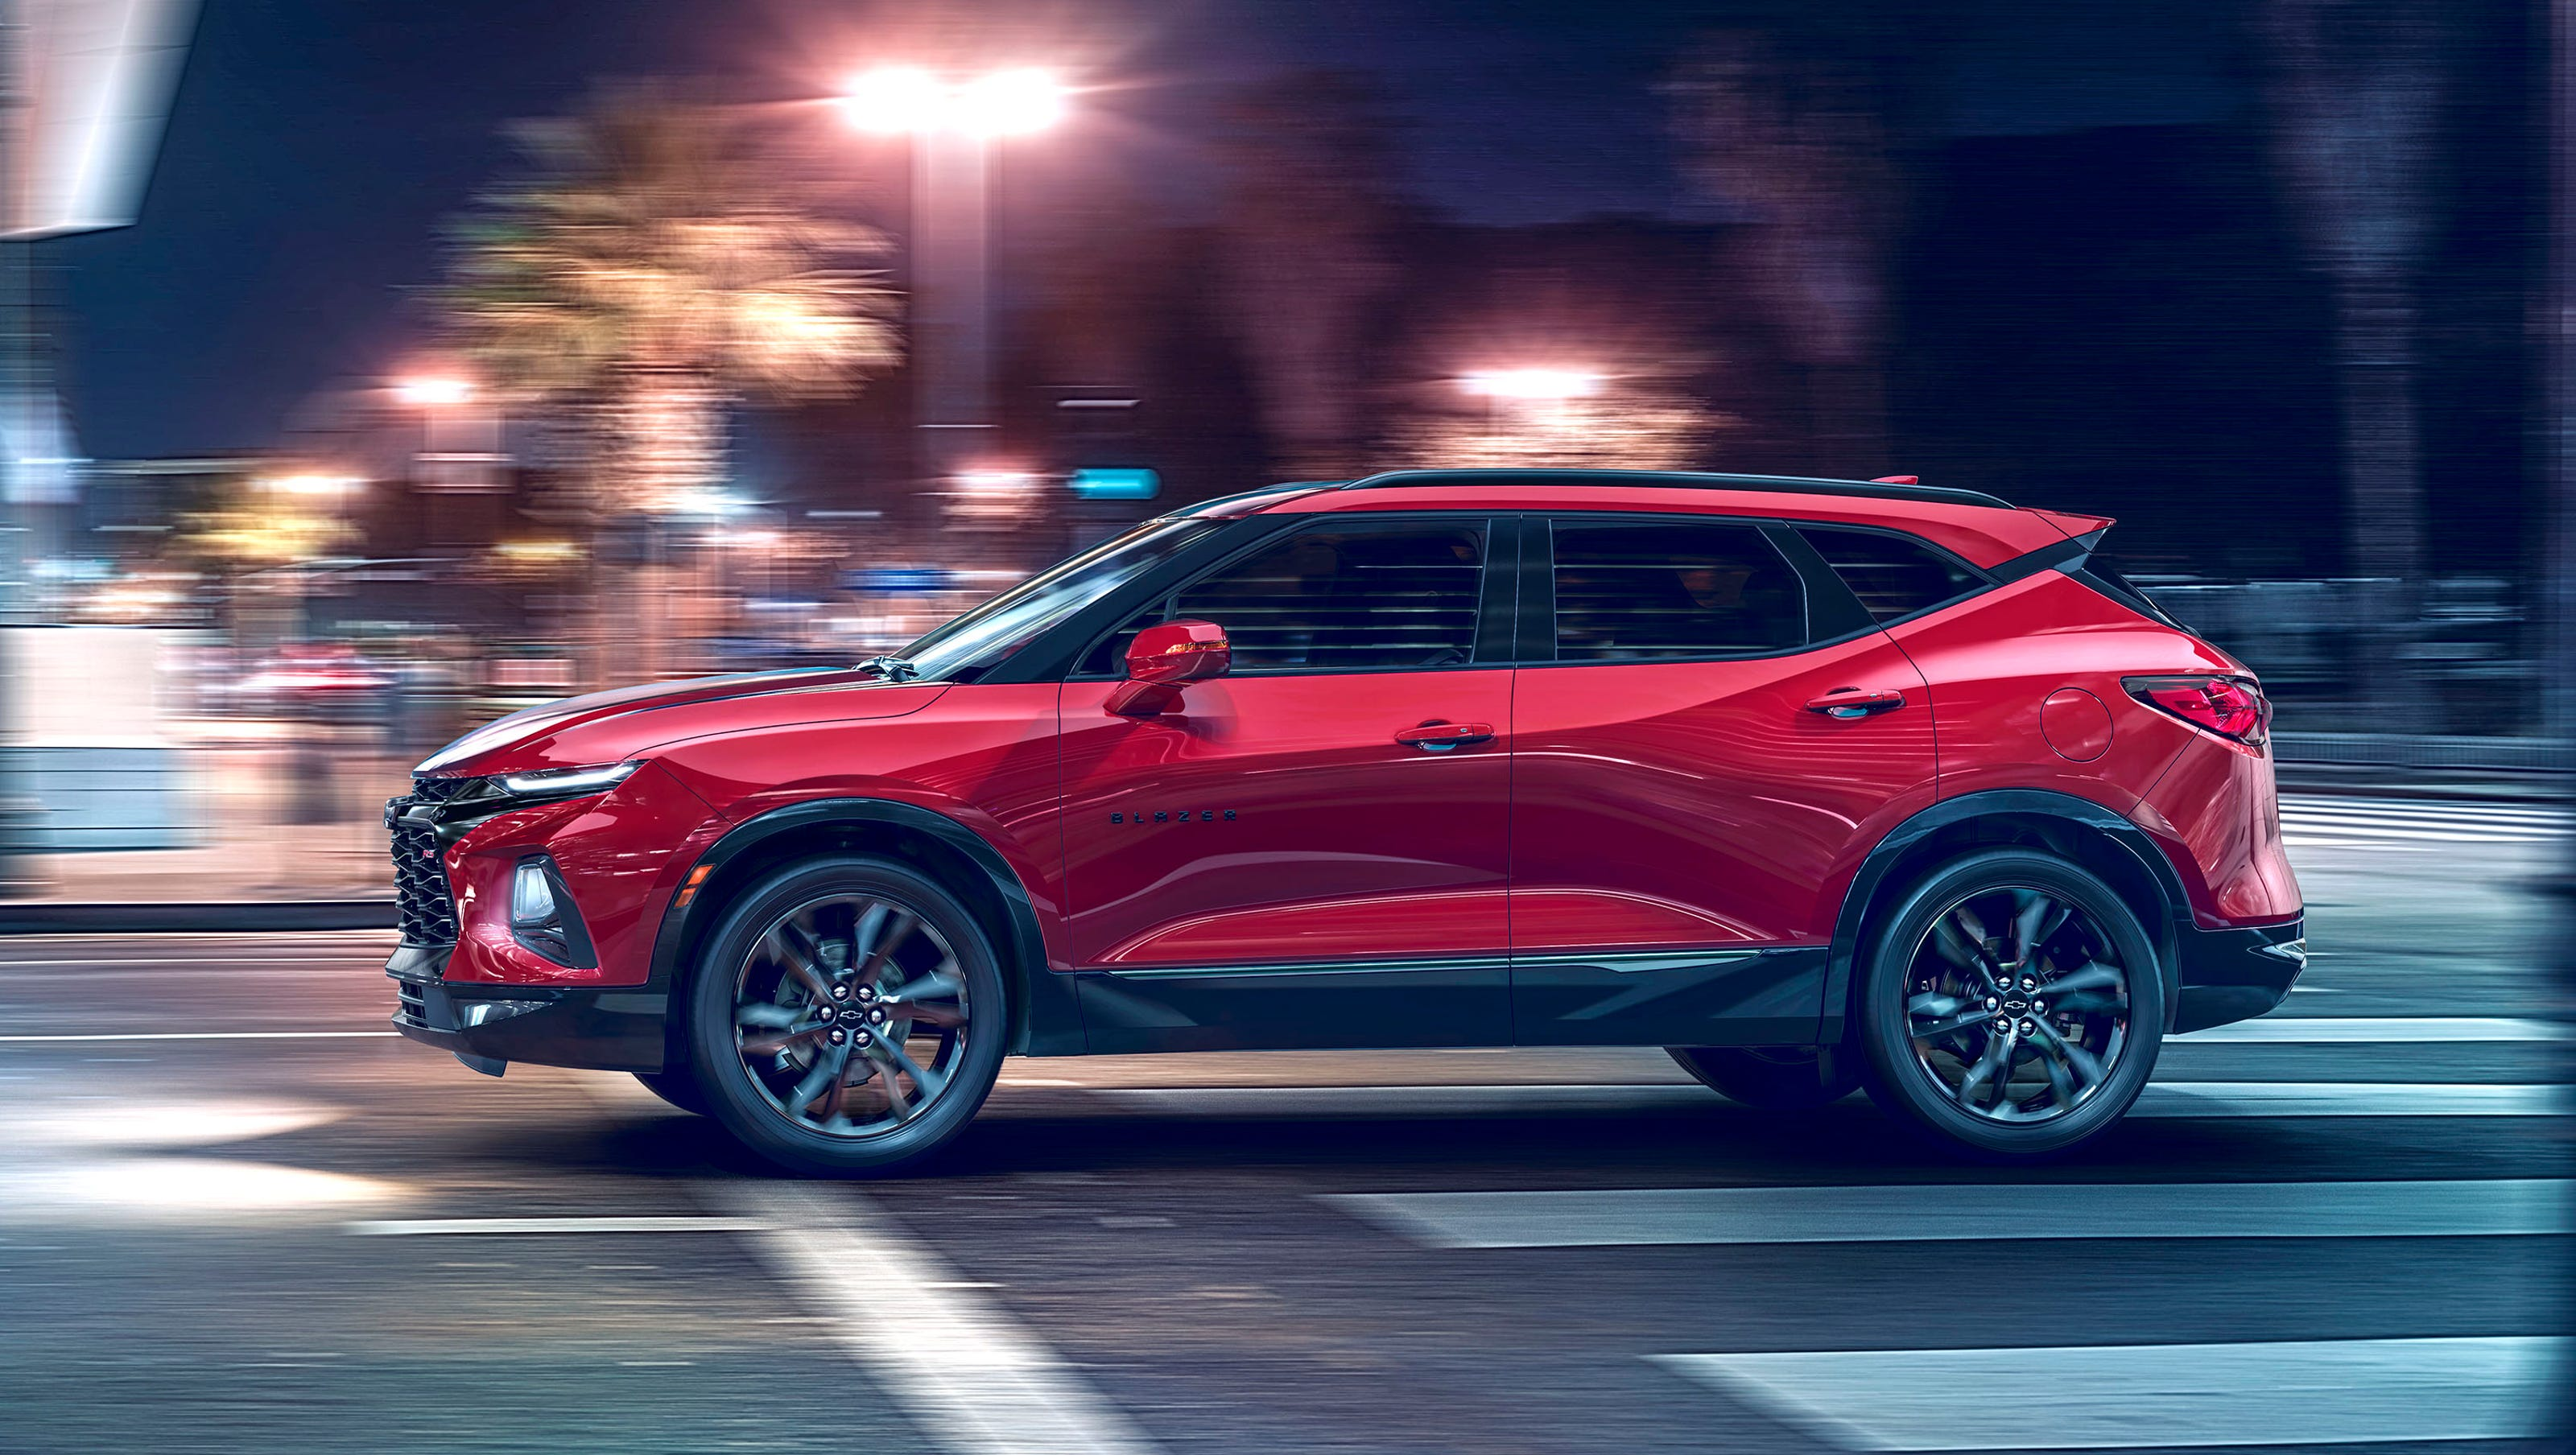 Chevrolet Grand Blazer >> What shoppers will like about the all-new 2019 Chevy Blazer